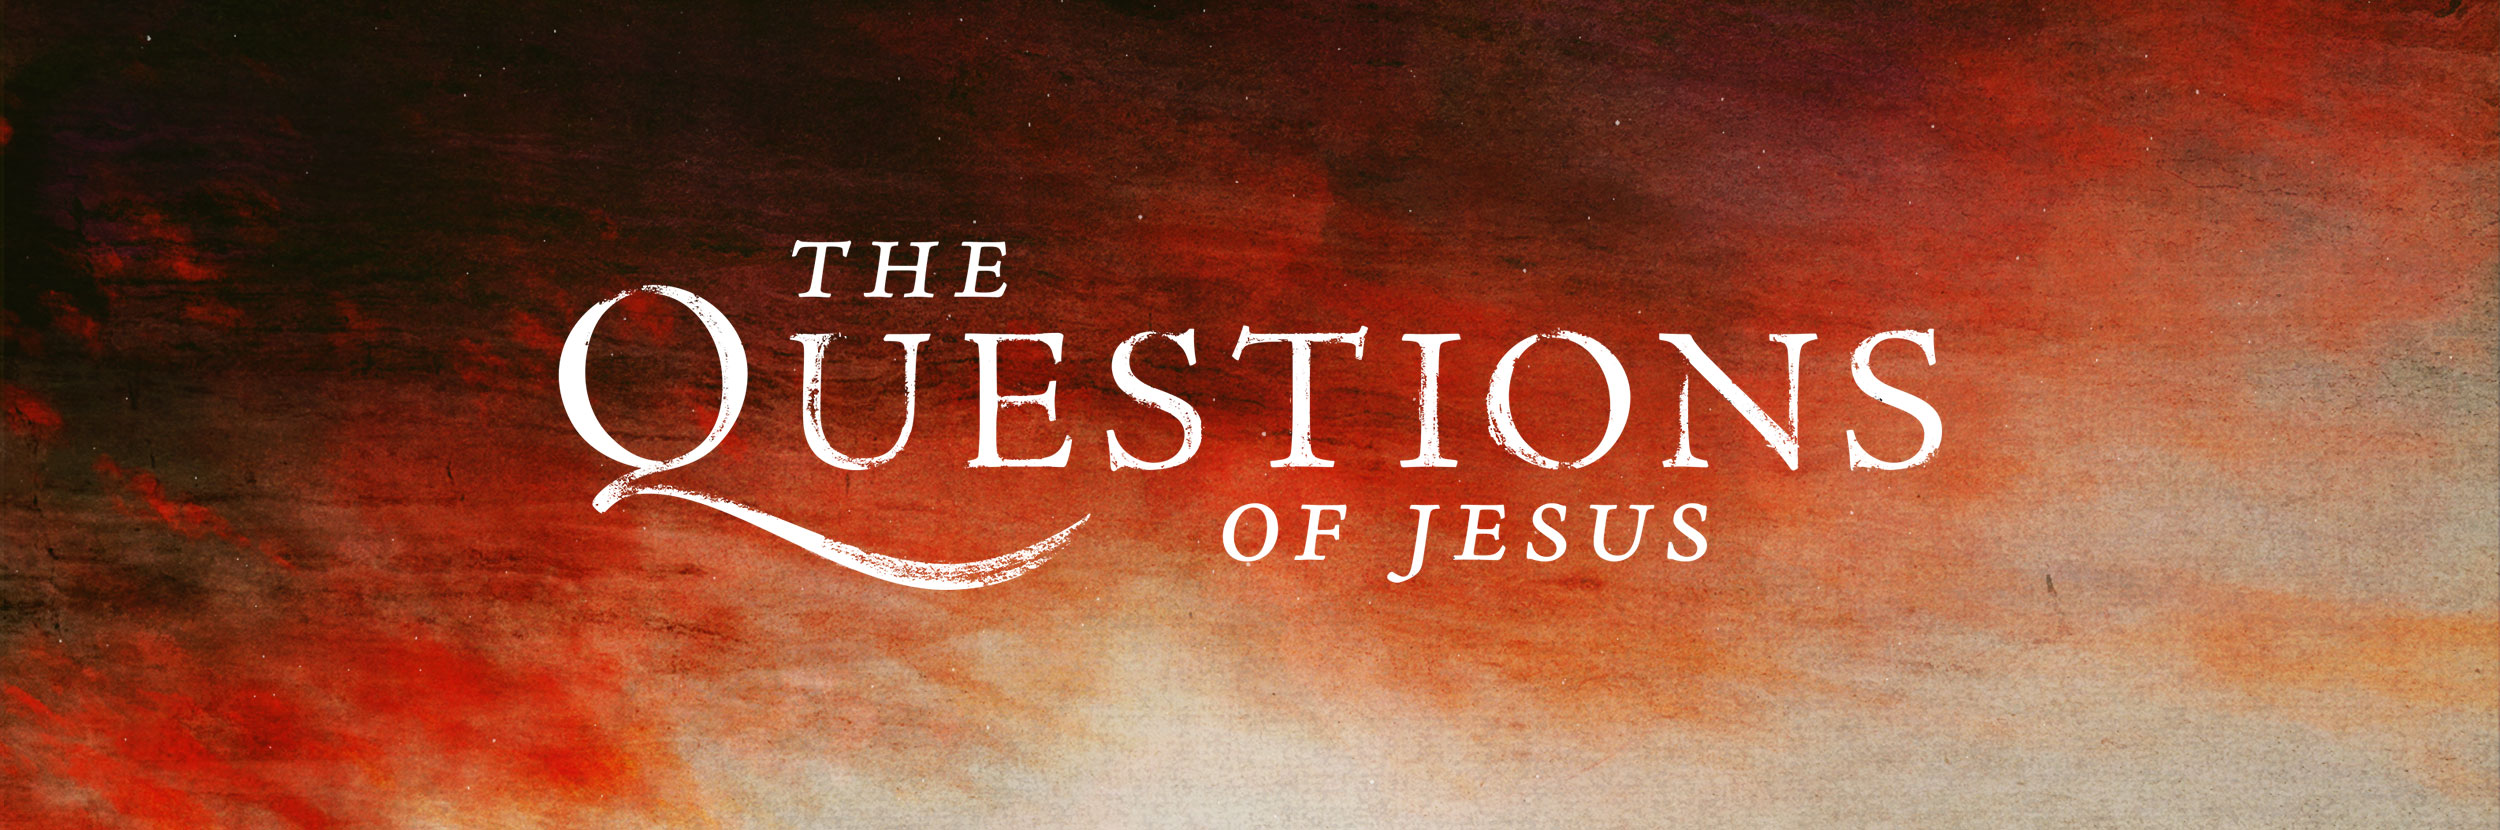 the-questions-of-jesus-holy-week-banner-2500x830.jpg